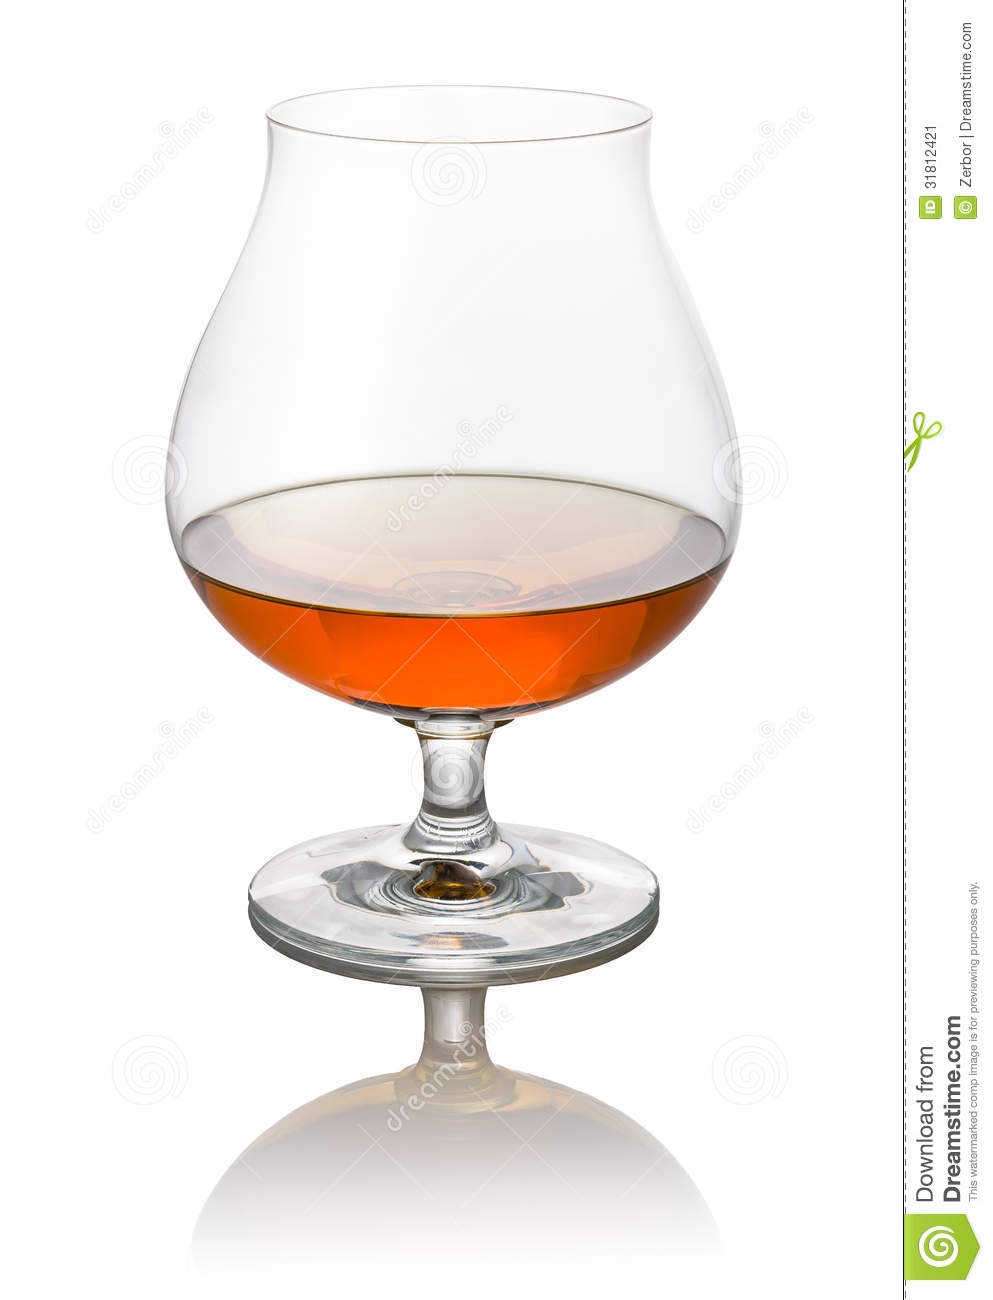 how to hold a brandy glass